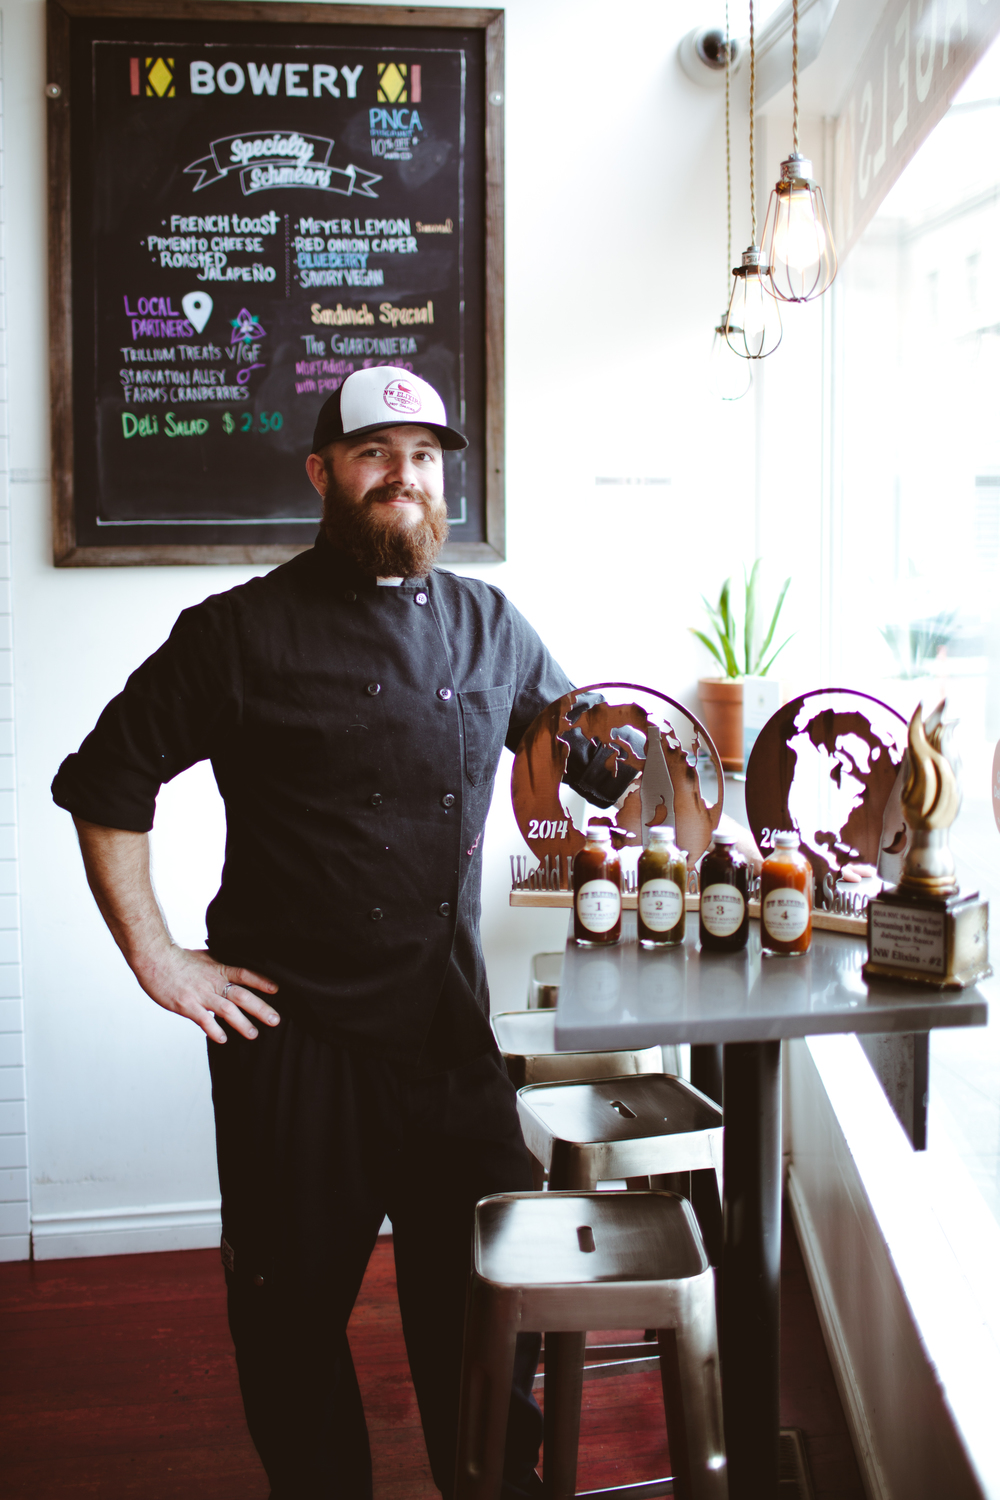 Chef Andrew Garrett with his World Hot Sauce and Screaming Mimi Awards.